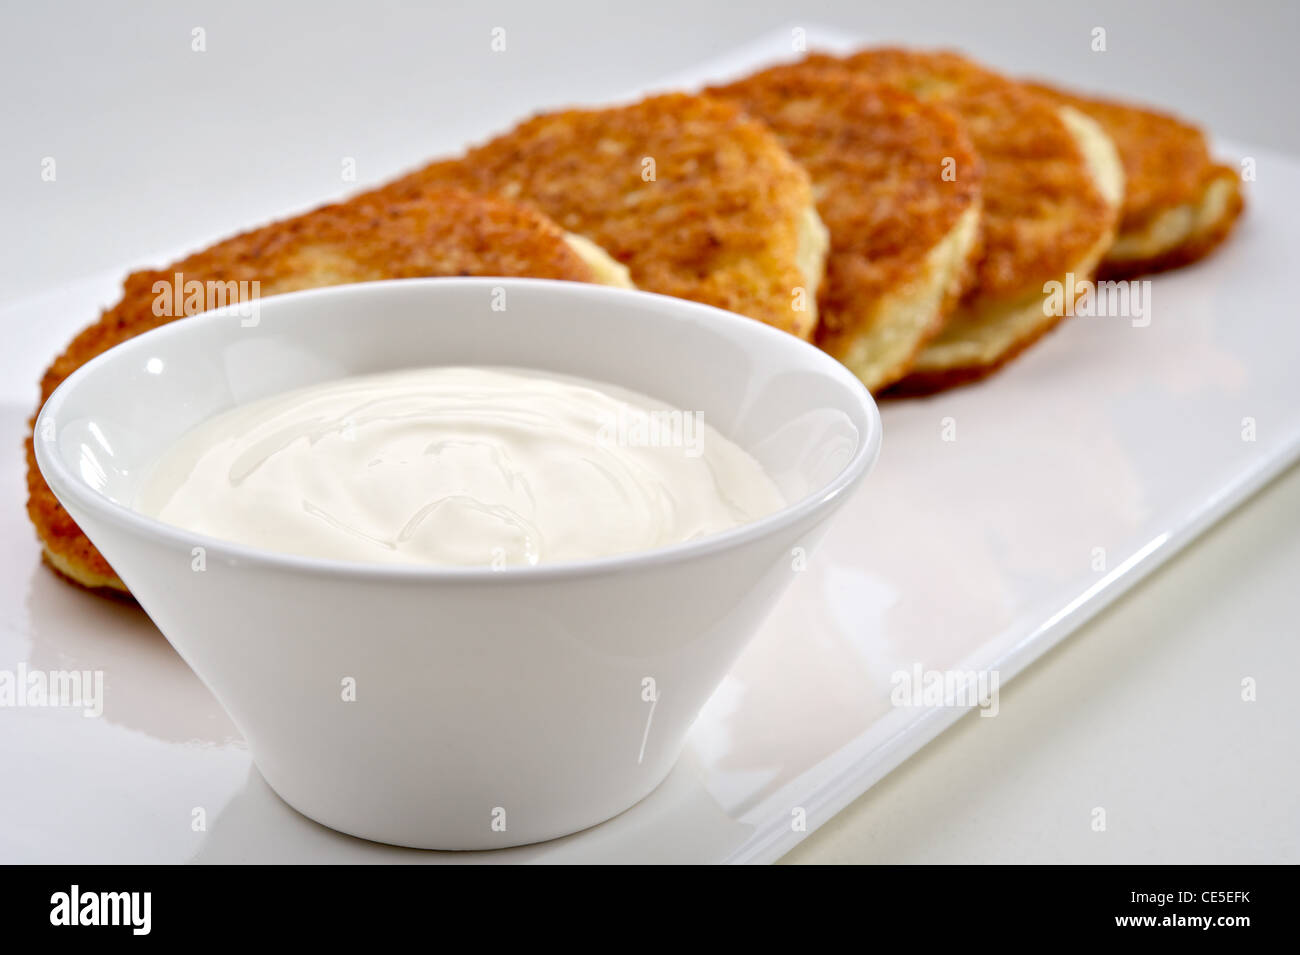 Potato pancakes served on white plate with sour cream - Stock Image